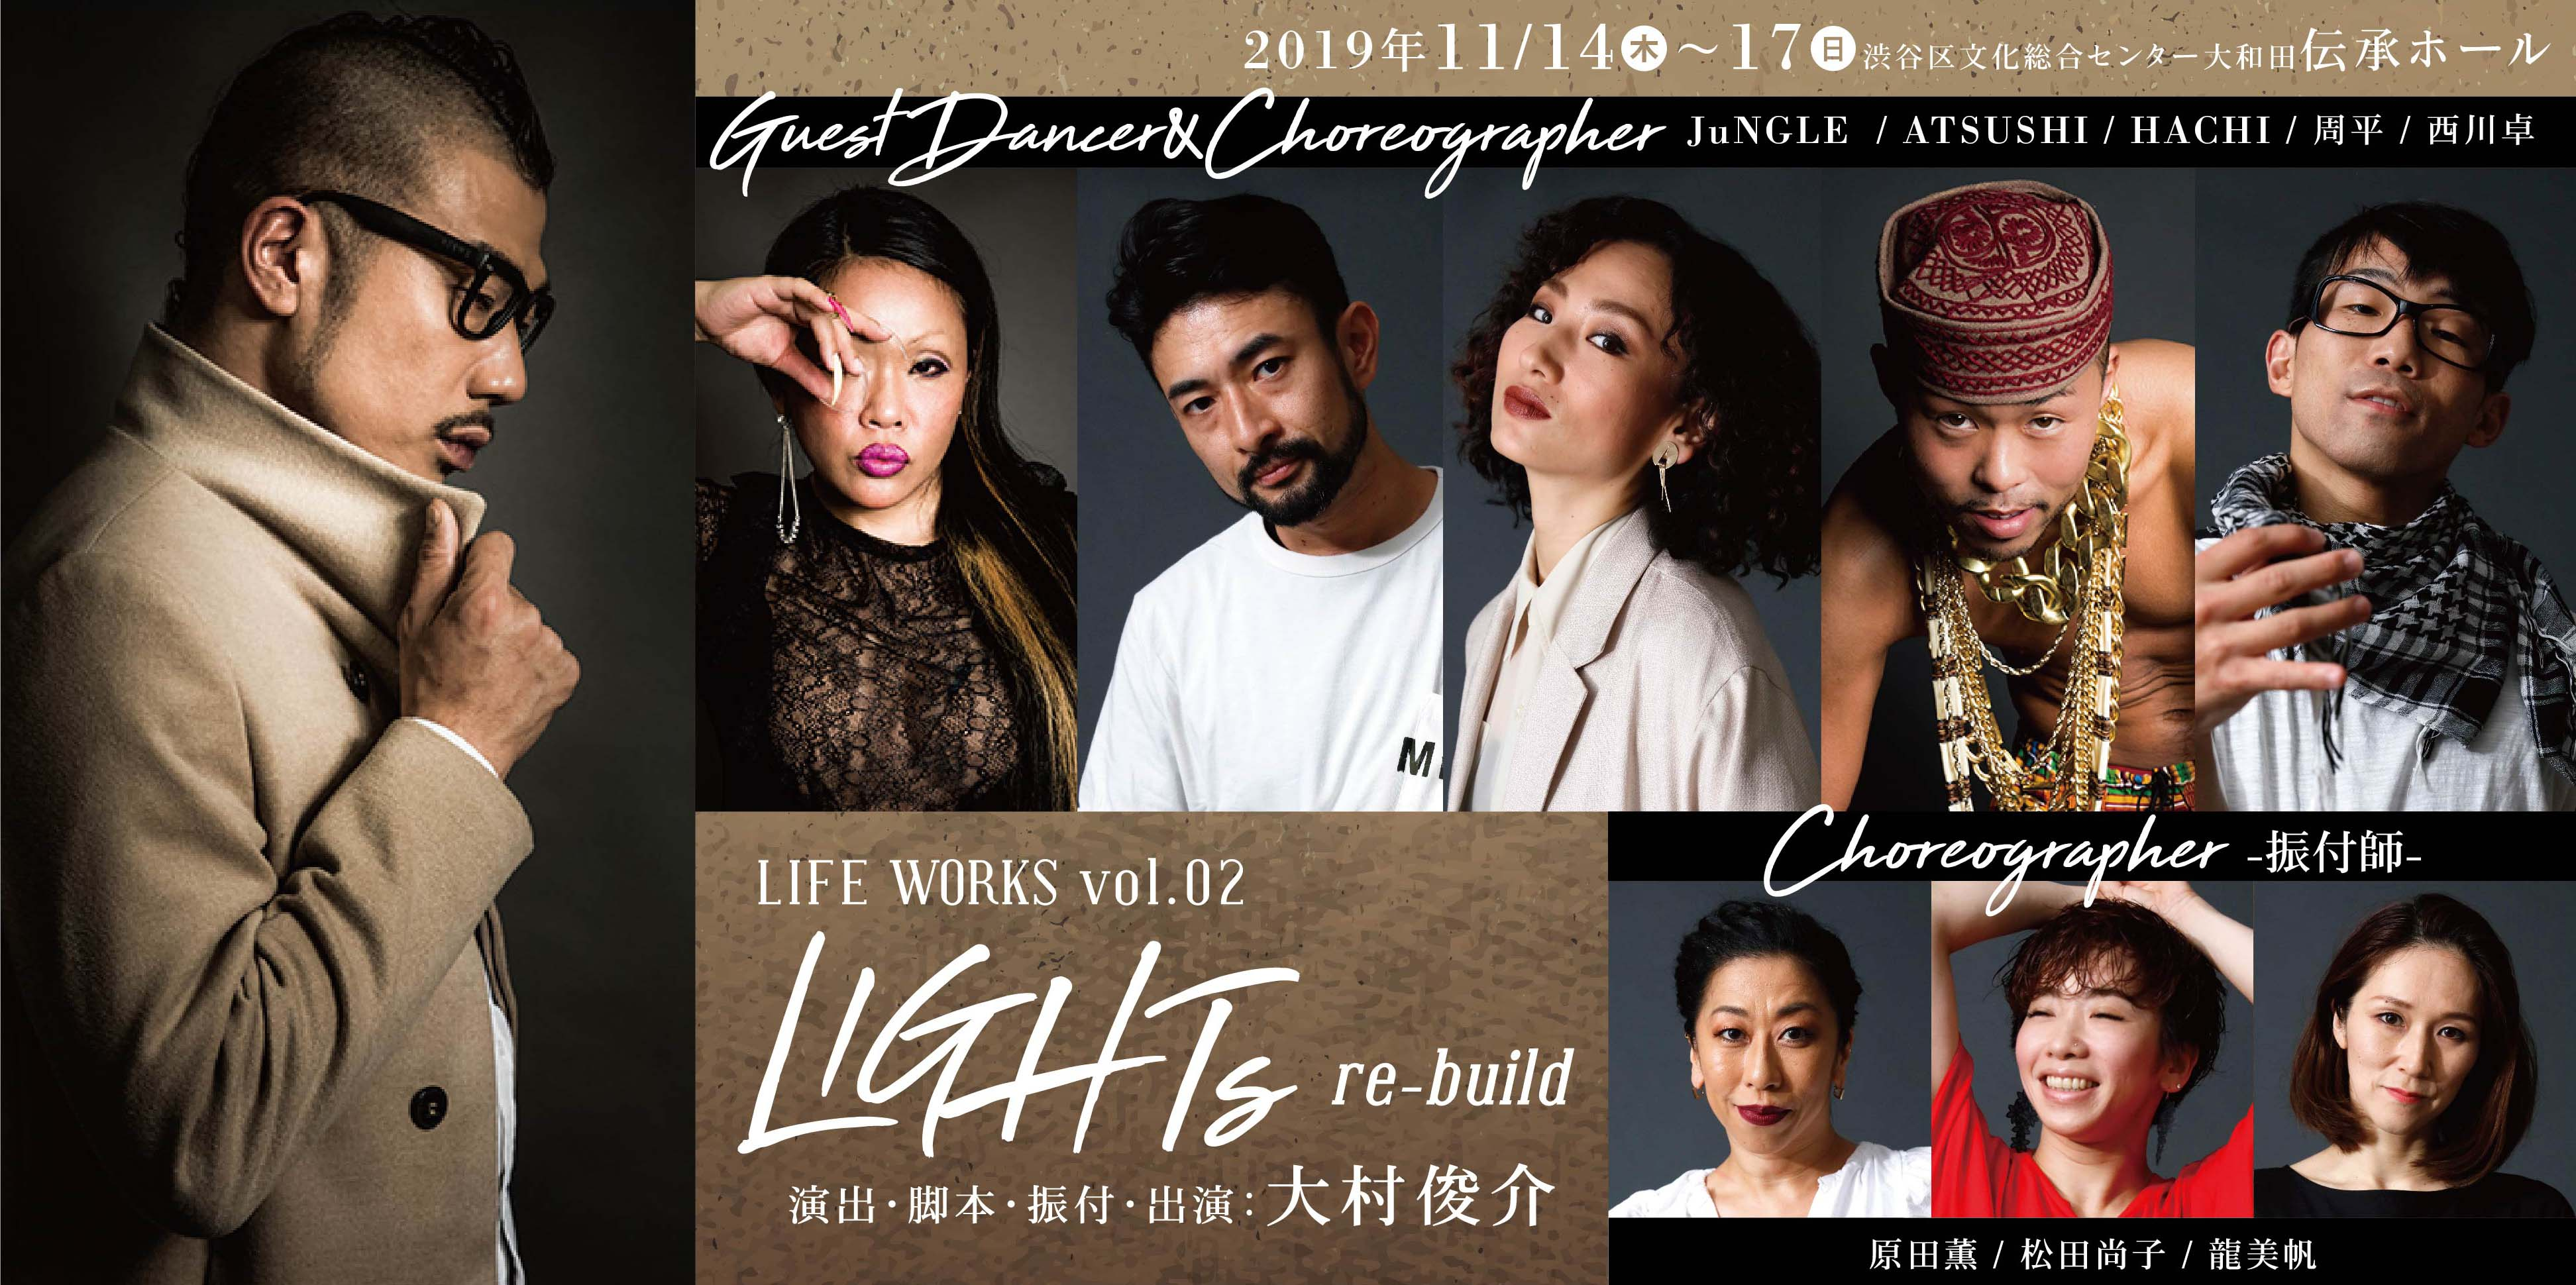 LIFE WORKS vol.2 「LIGHTs」re-builld